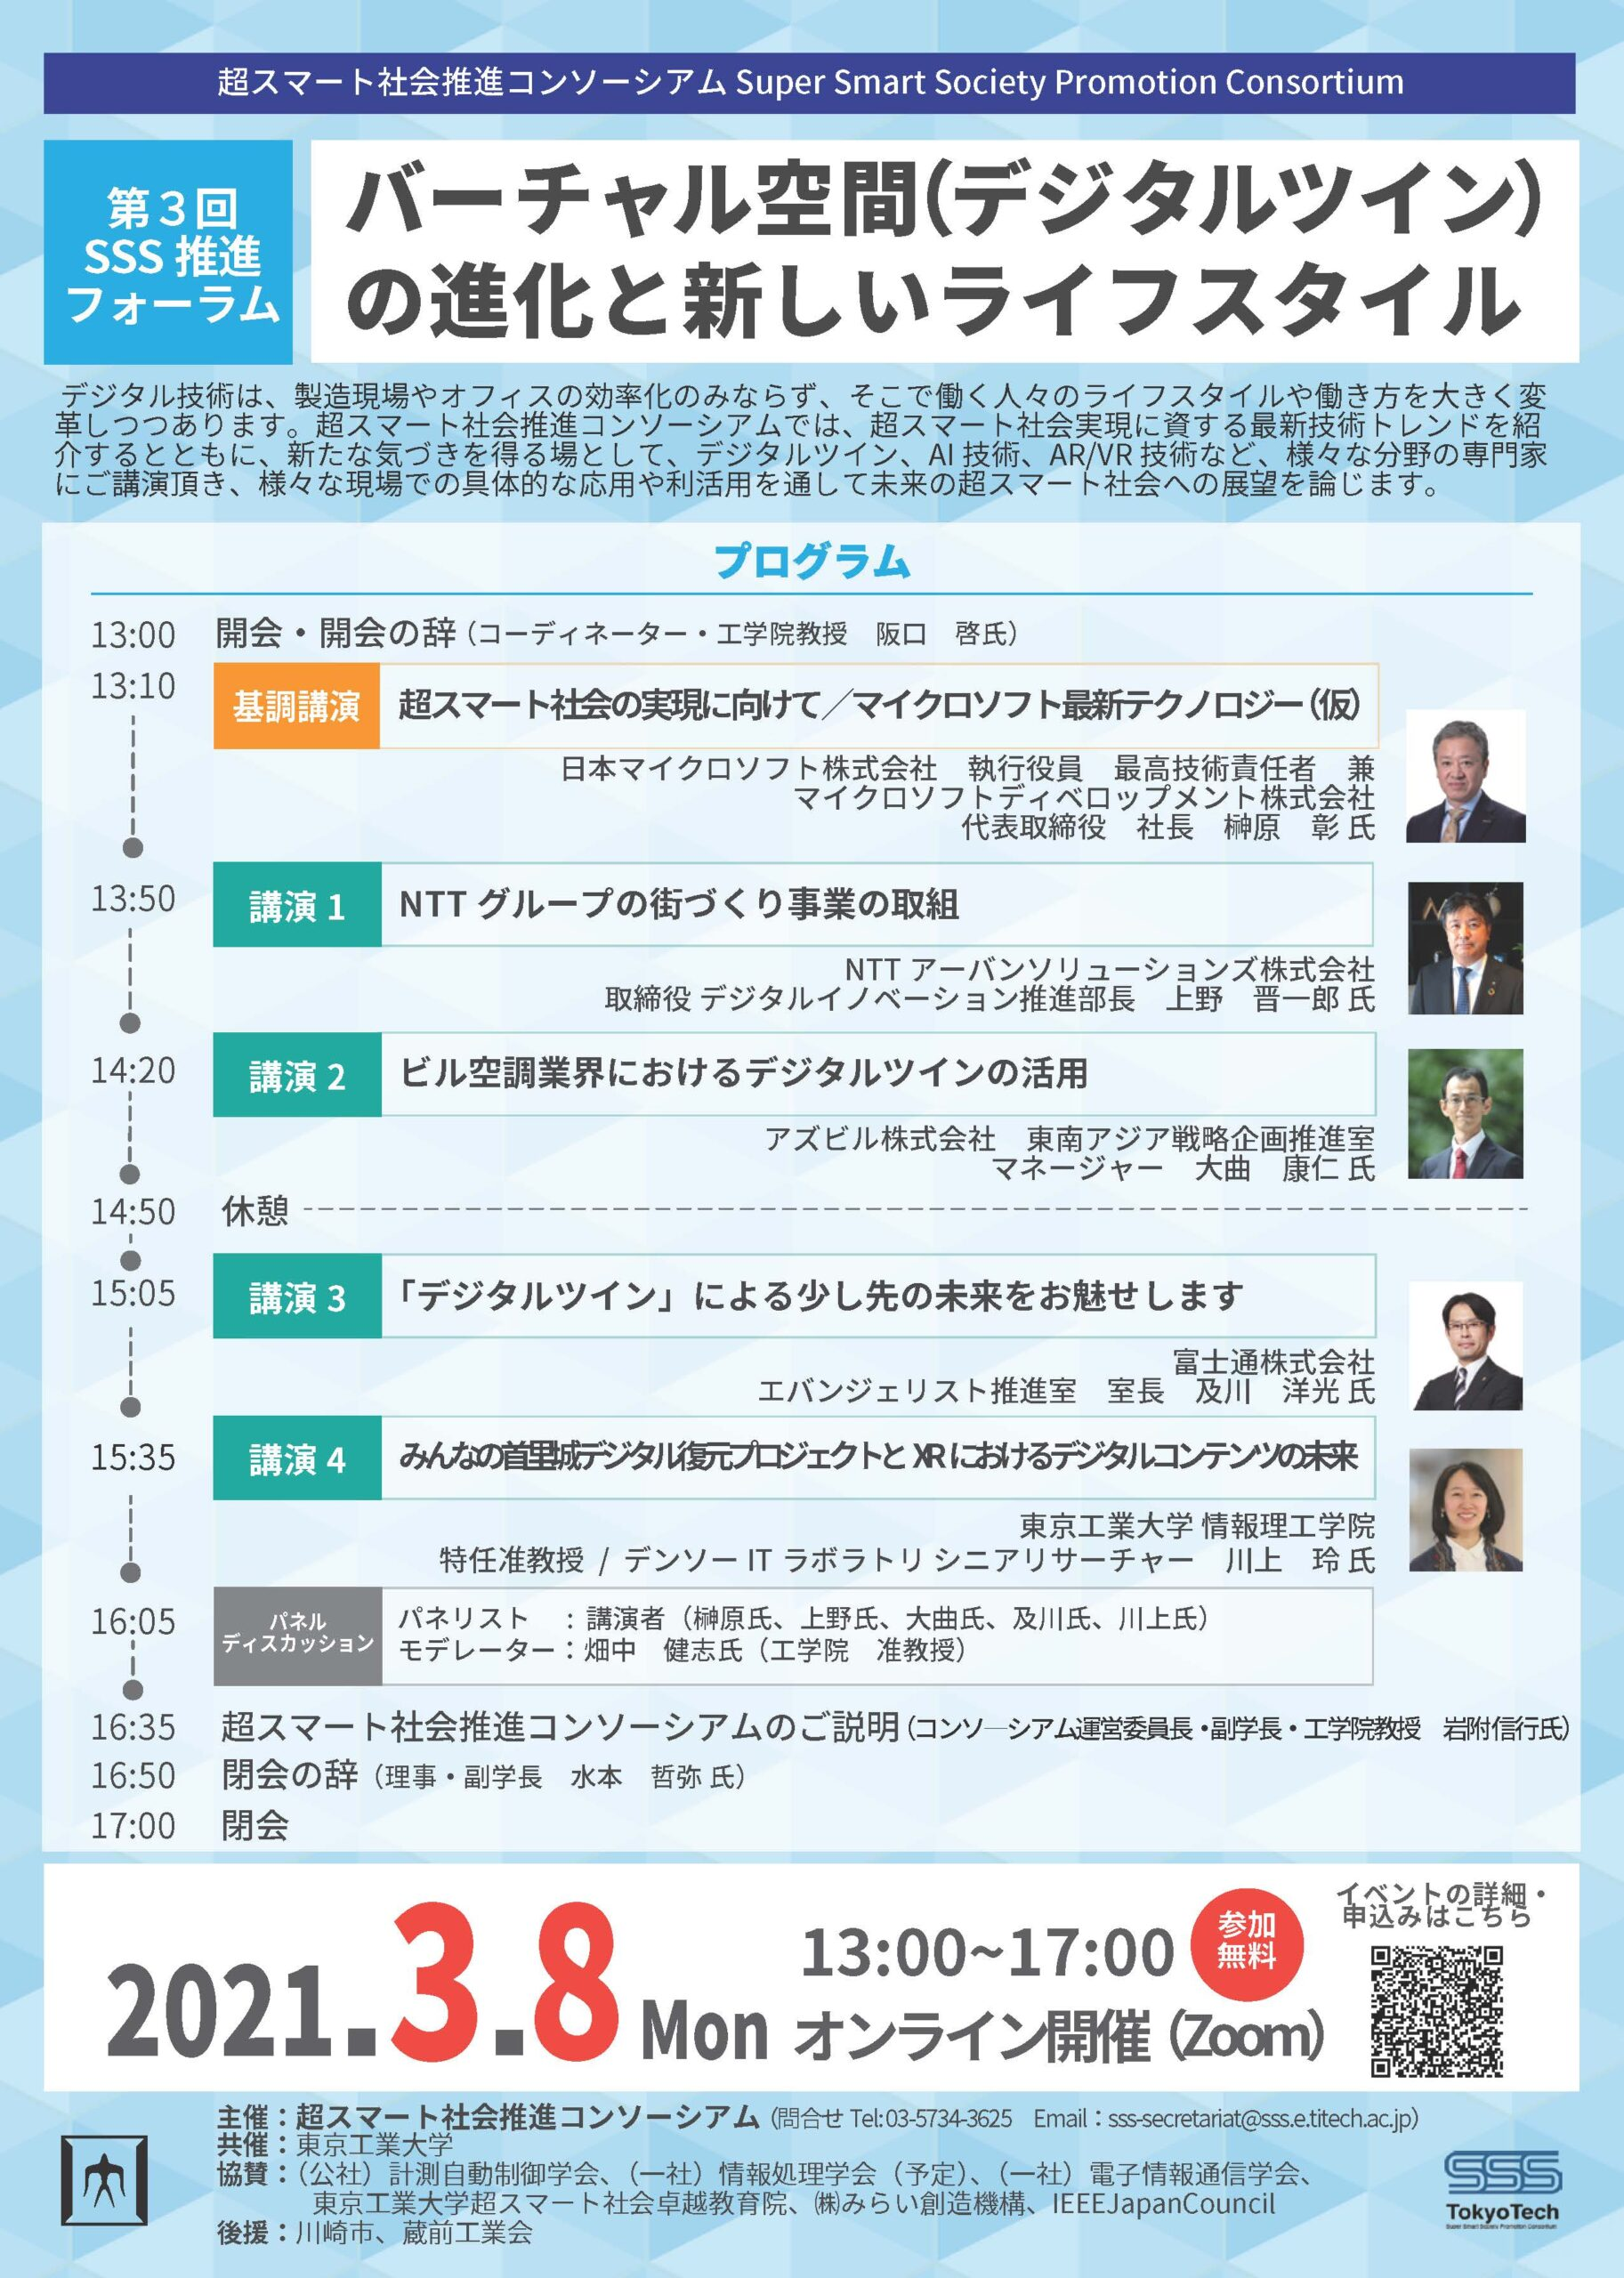 """3rd SSS Promotion Forum """"The evolution of virtual space (Digital Twin) and new lifestyles Date:Monday, March 8, 2021 at 13:00-17:00, Venue:Online(Zoom) Admission Free"""